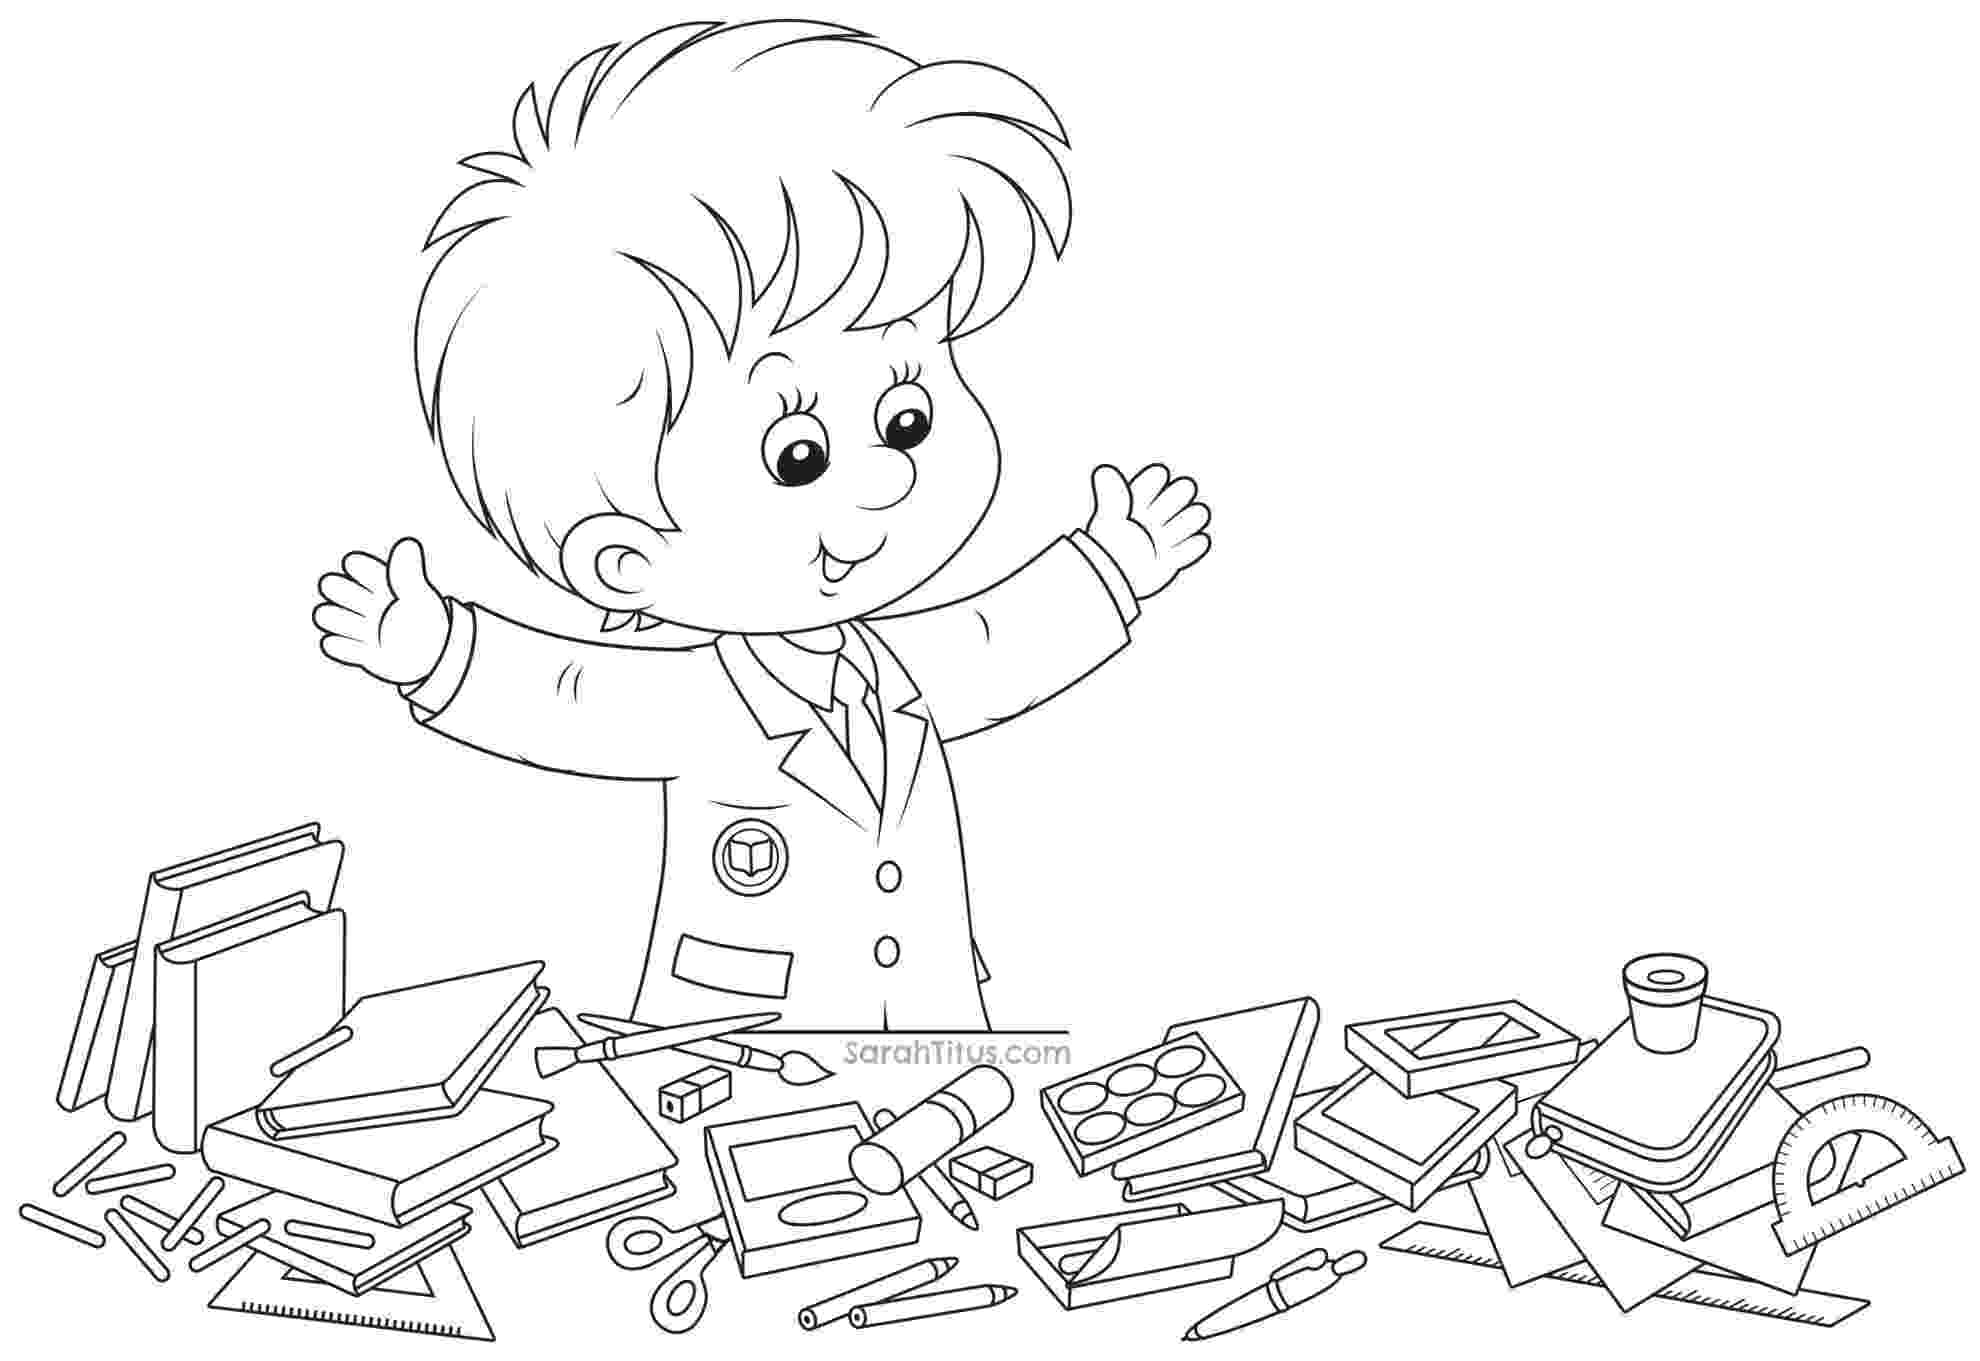 colouring pages for play school back to school coloring pages sarah titus pages colouring play school for